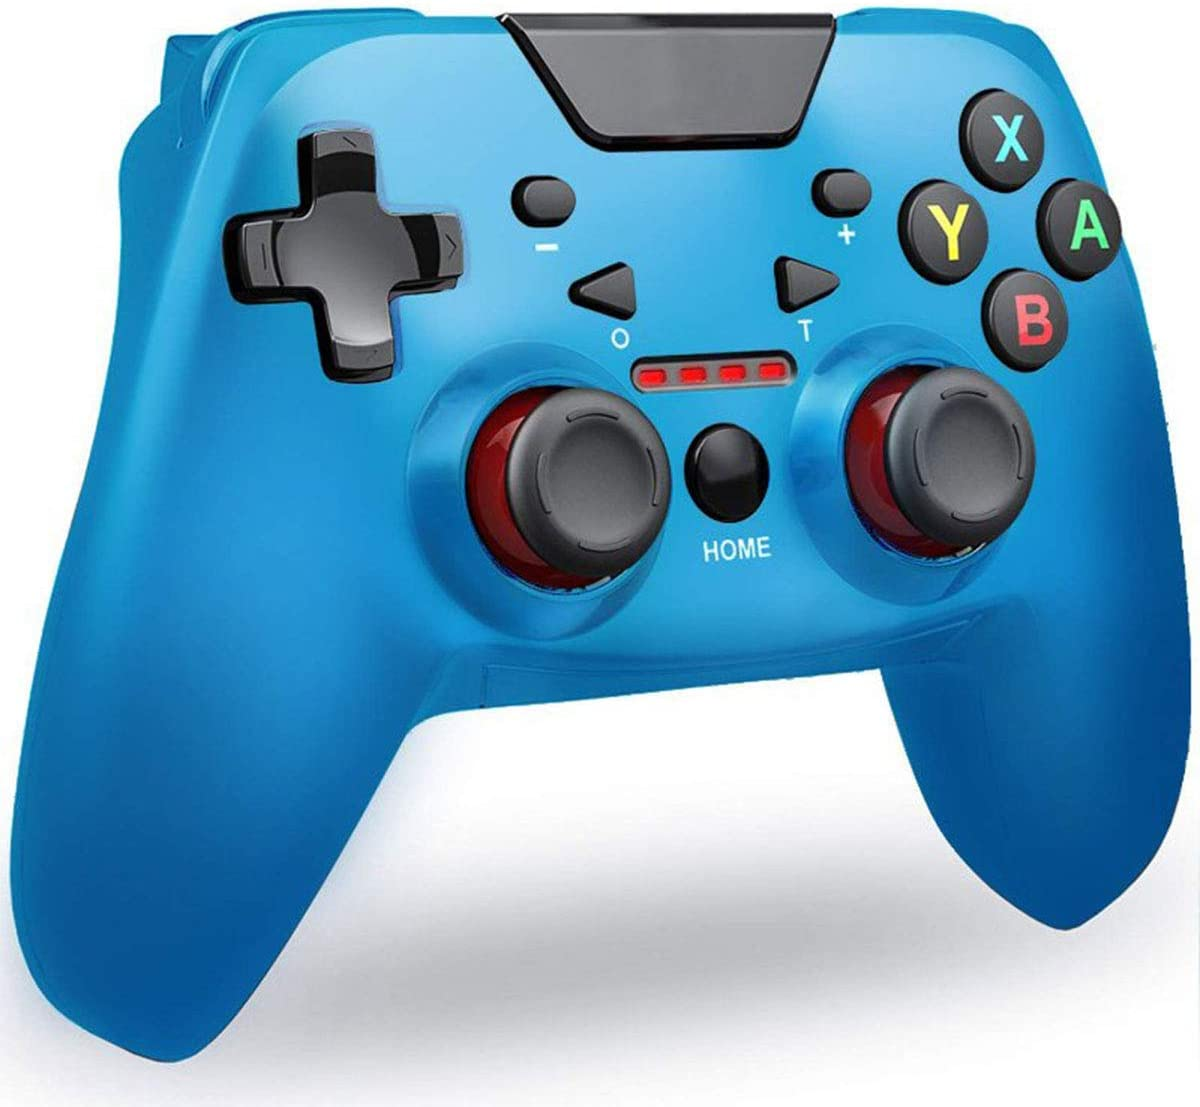 Wireless Bluetooth Game Controller for Nintendo Switch, Supports Gyroscope axis, Turbine and Dual Vibration. (Blue)